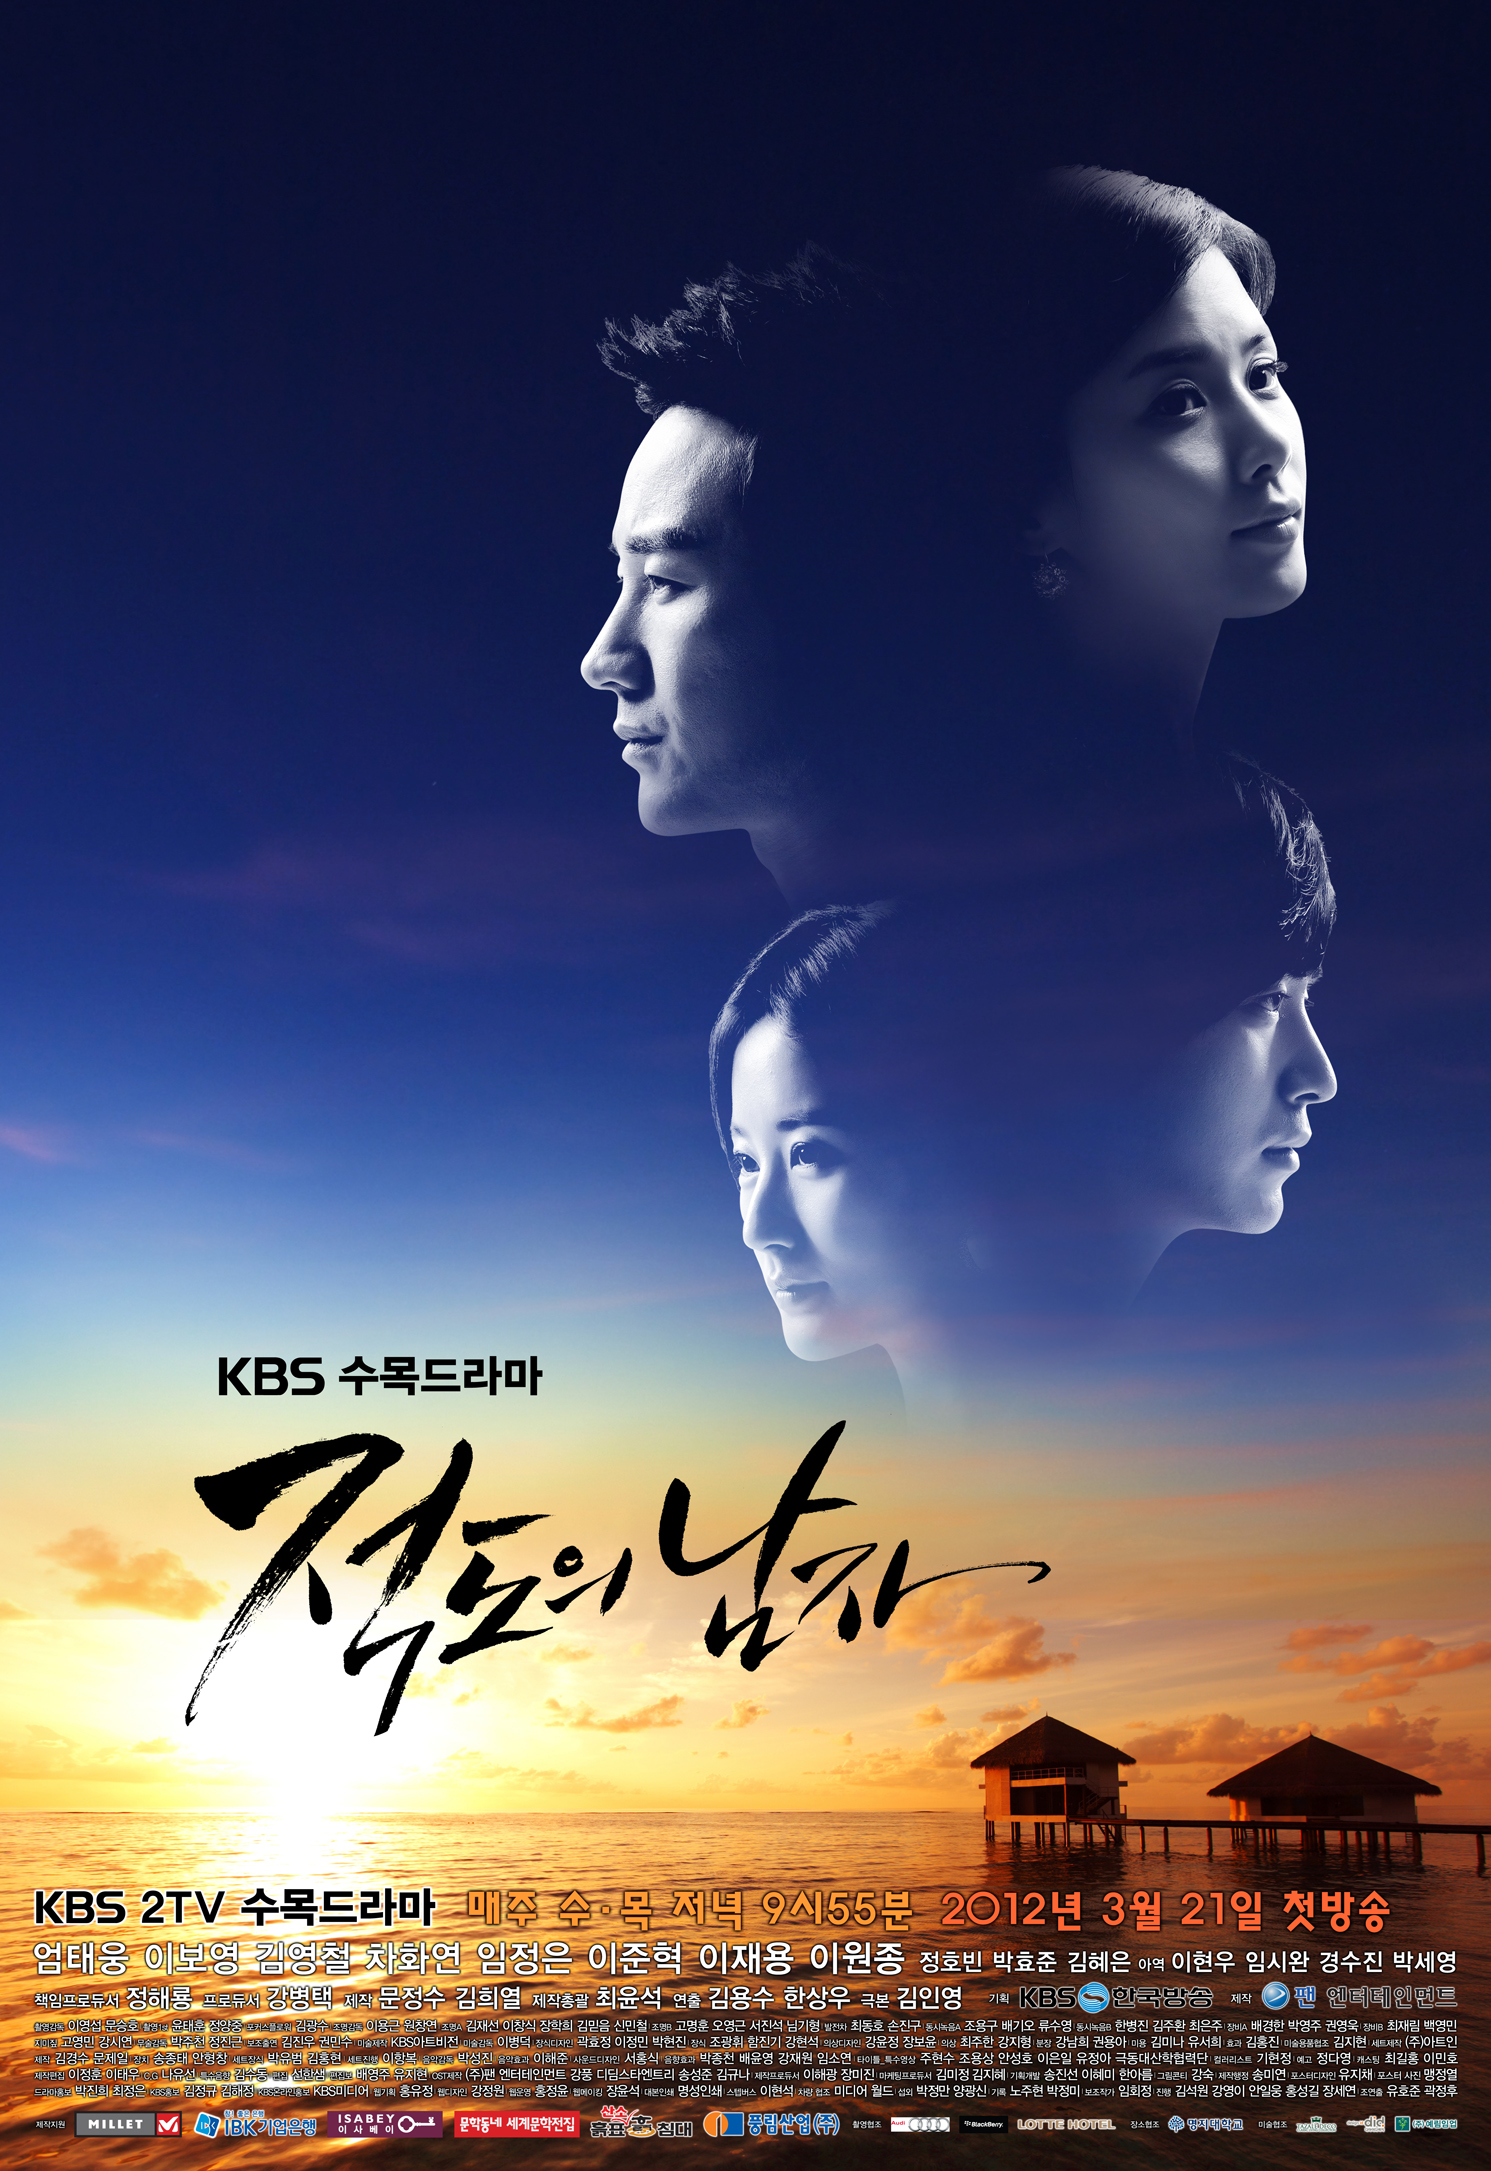 Man From The Equator một trong những phim nổi bật của Lee Bo Young